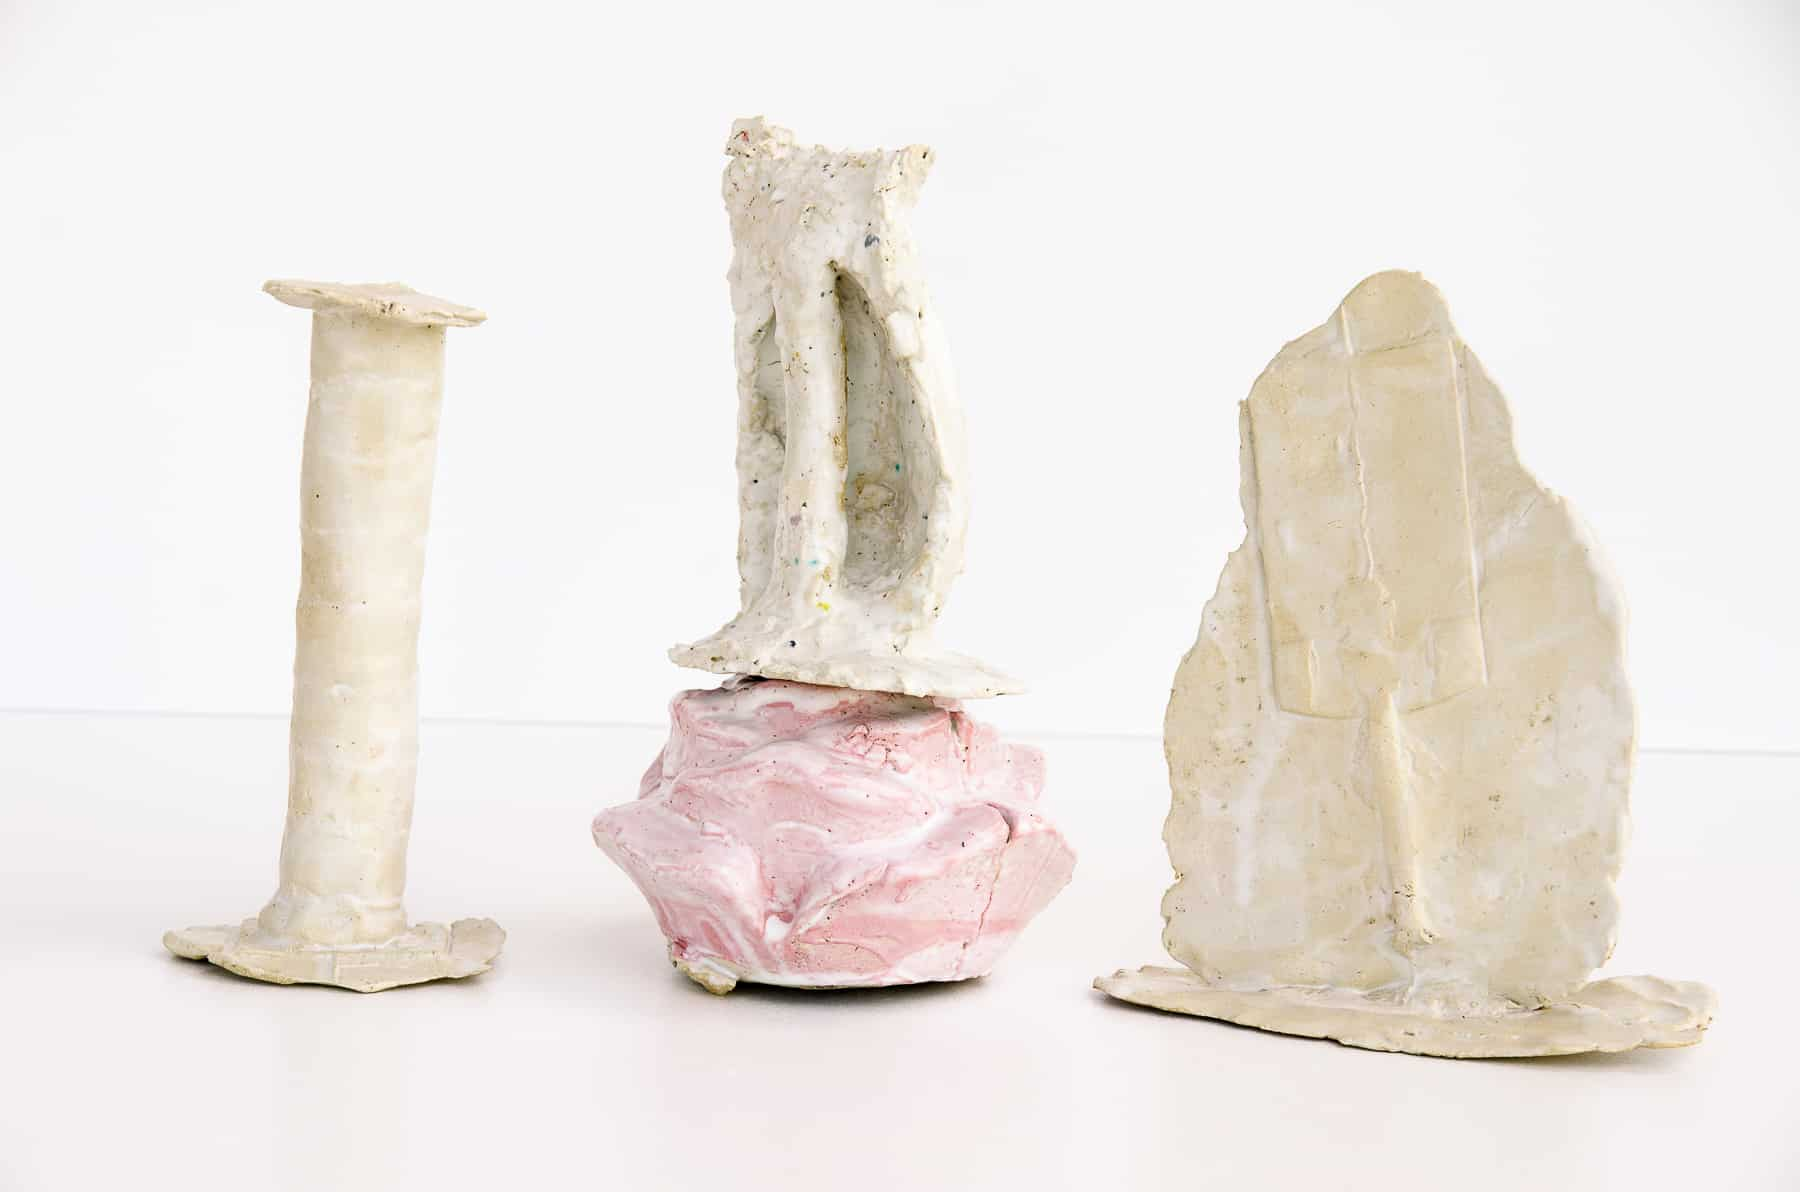 Ovidiu Leuce-Untitled (from the series Notes on the melody of things), white clay, slip casting and hand building, glazed, variable dimensions, 2018